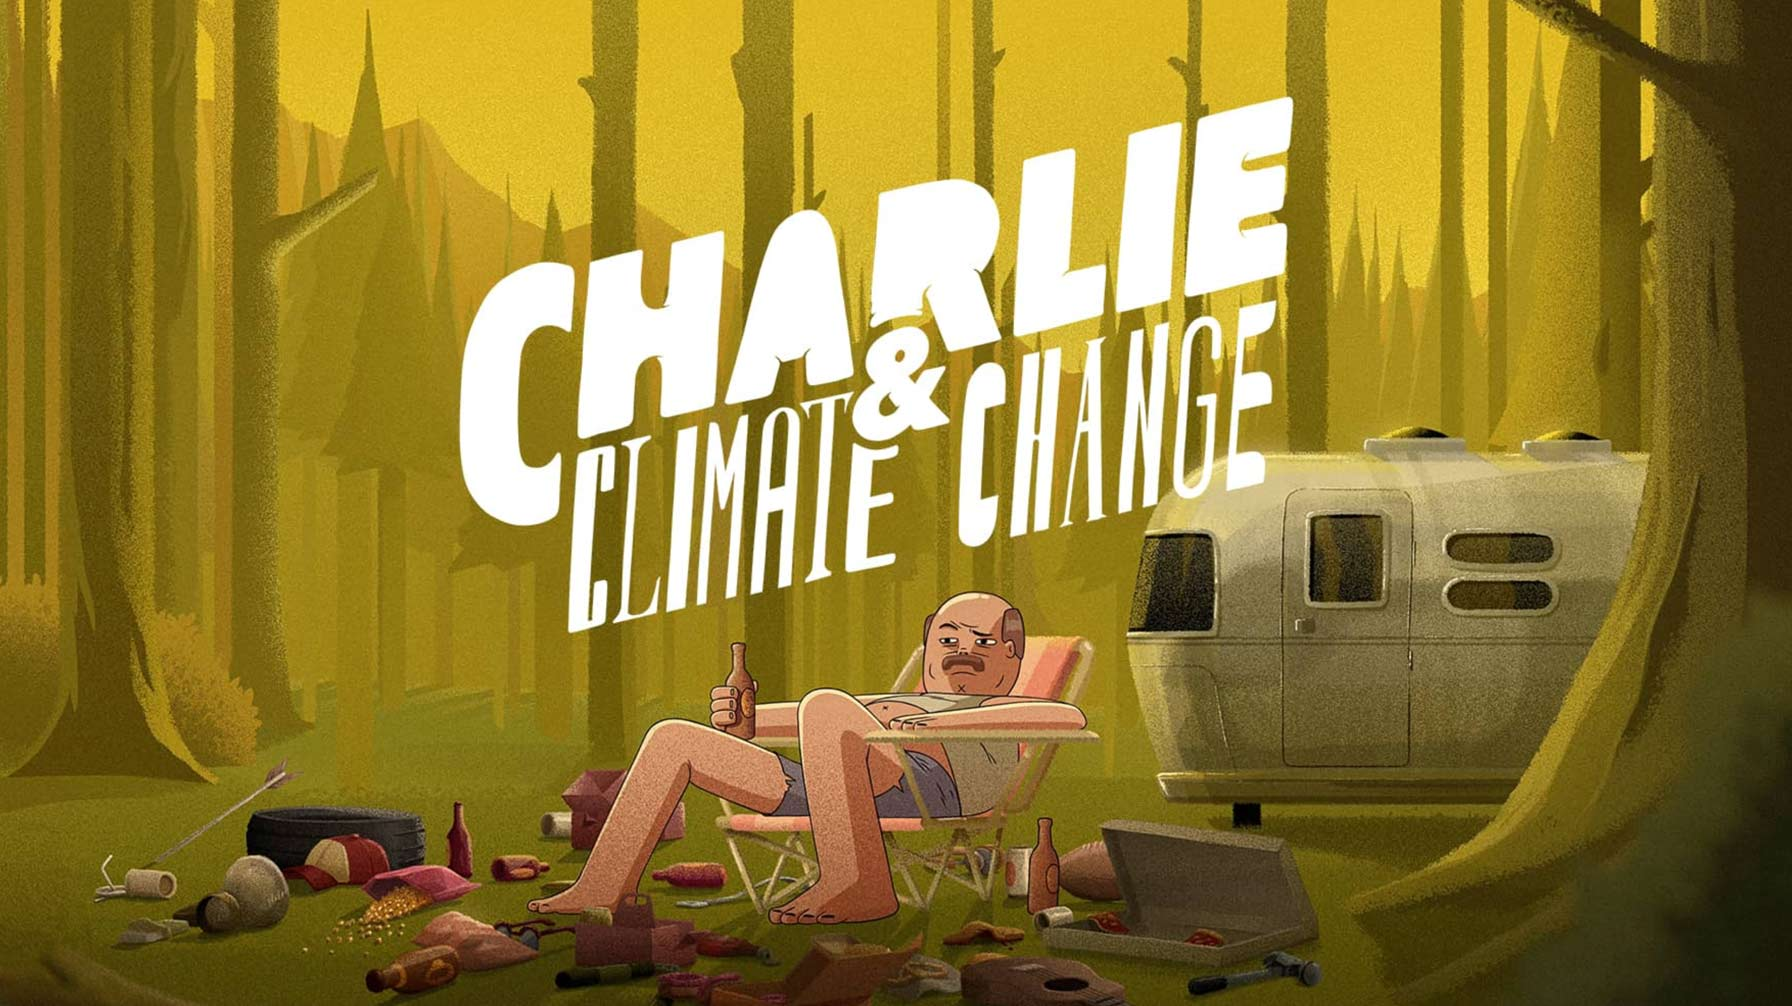 Charlie & Climate change